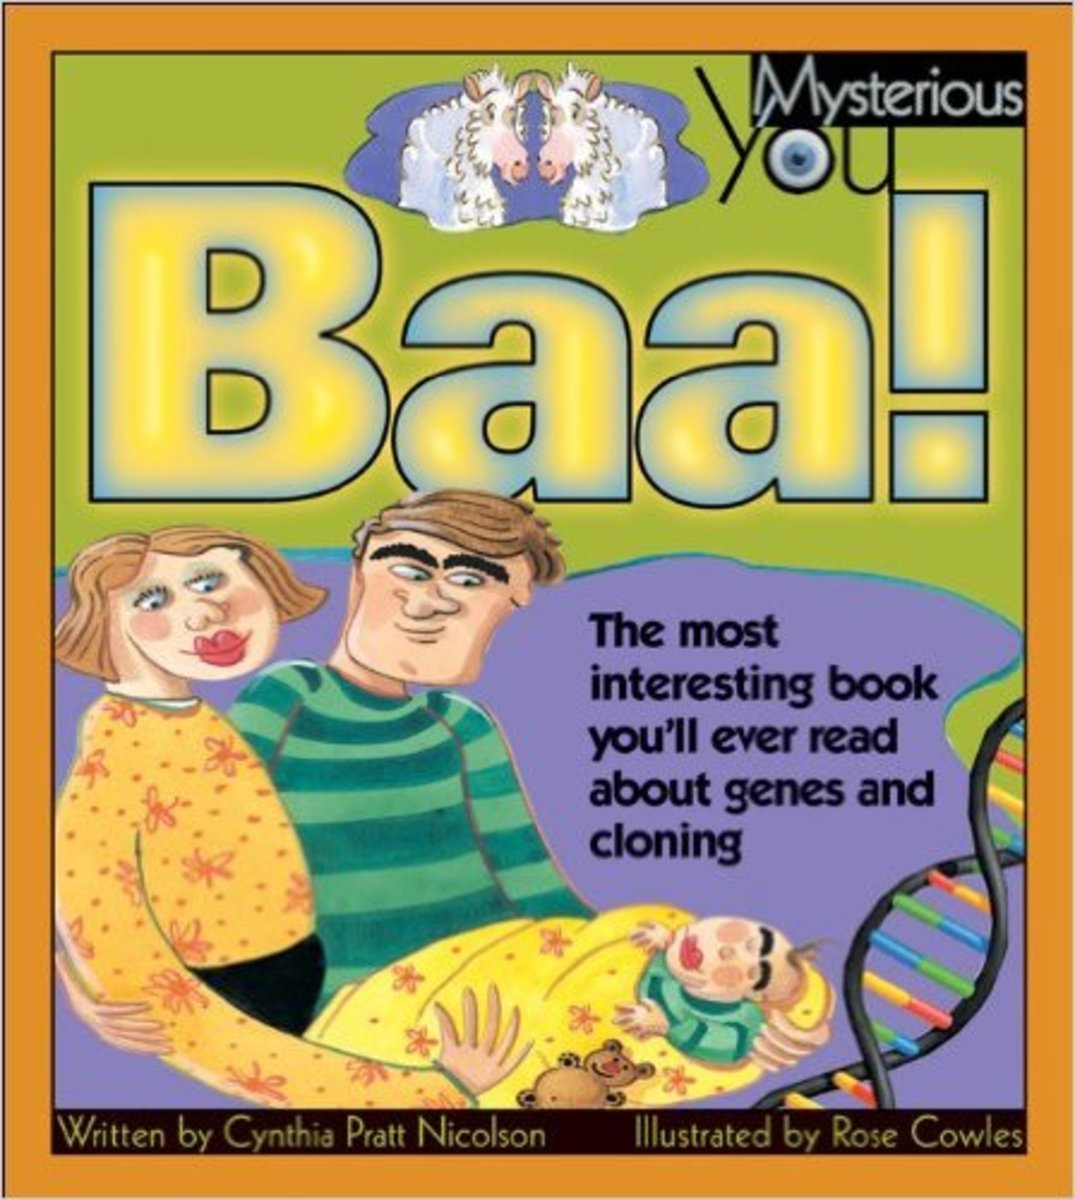 Baa!: The Most Interesting Book You'll Ever Read about Genes and Cloning (Mysterious You) y Cynthia Pratt Nicolson